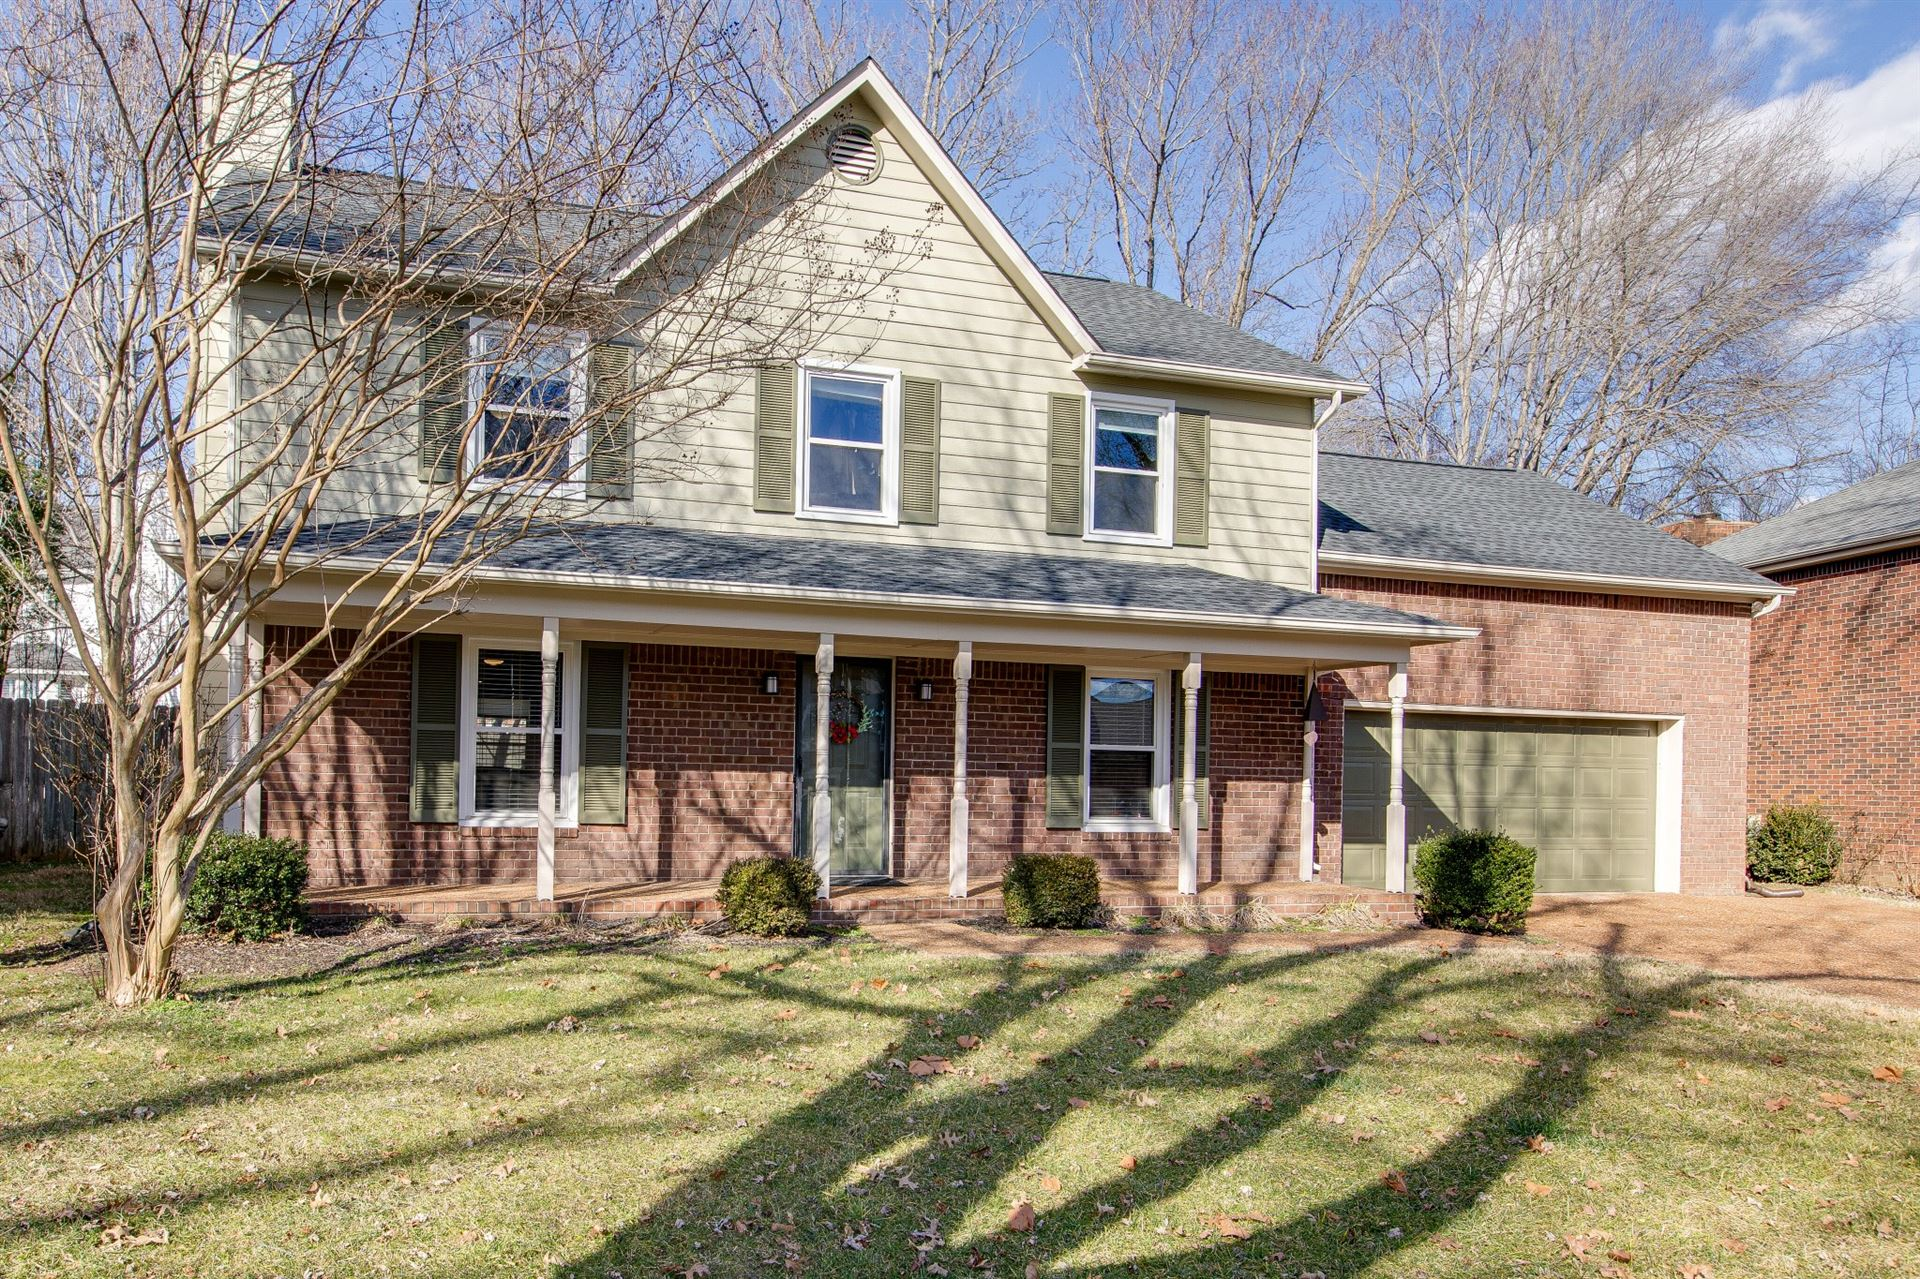 506 Maplegrove Dr, Franklin, TN 37064 - MLS#: 2221968